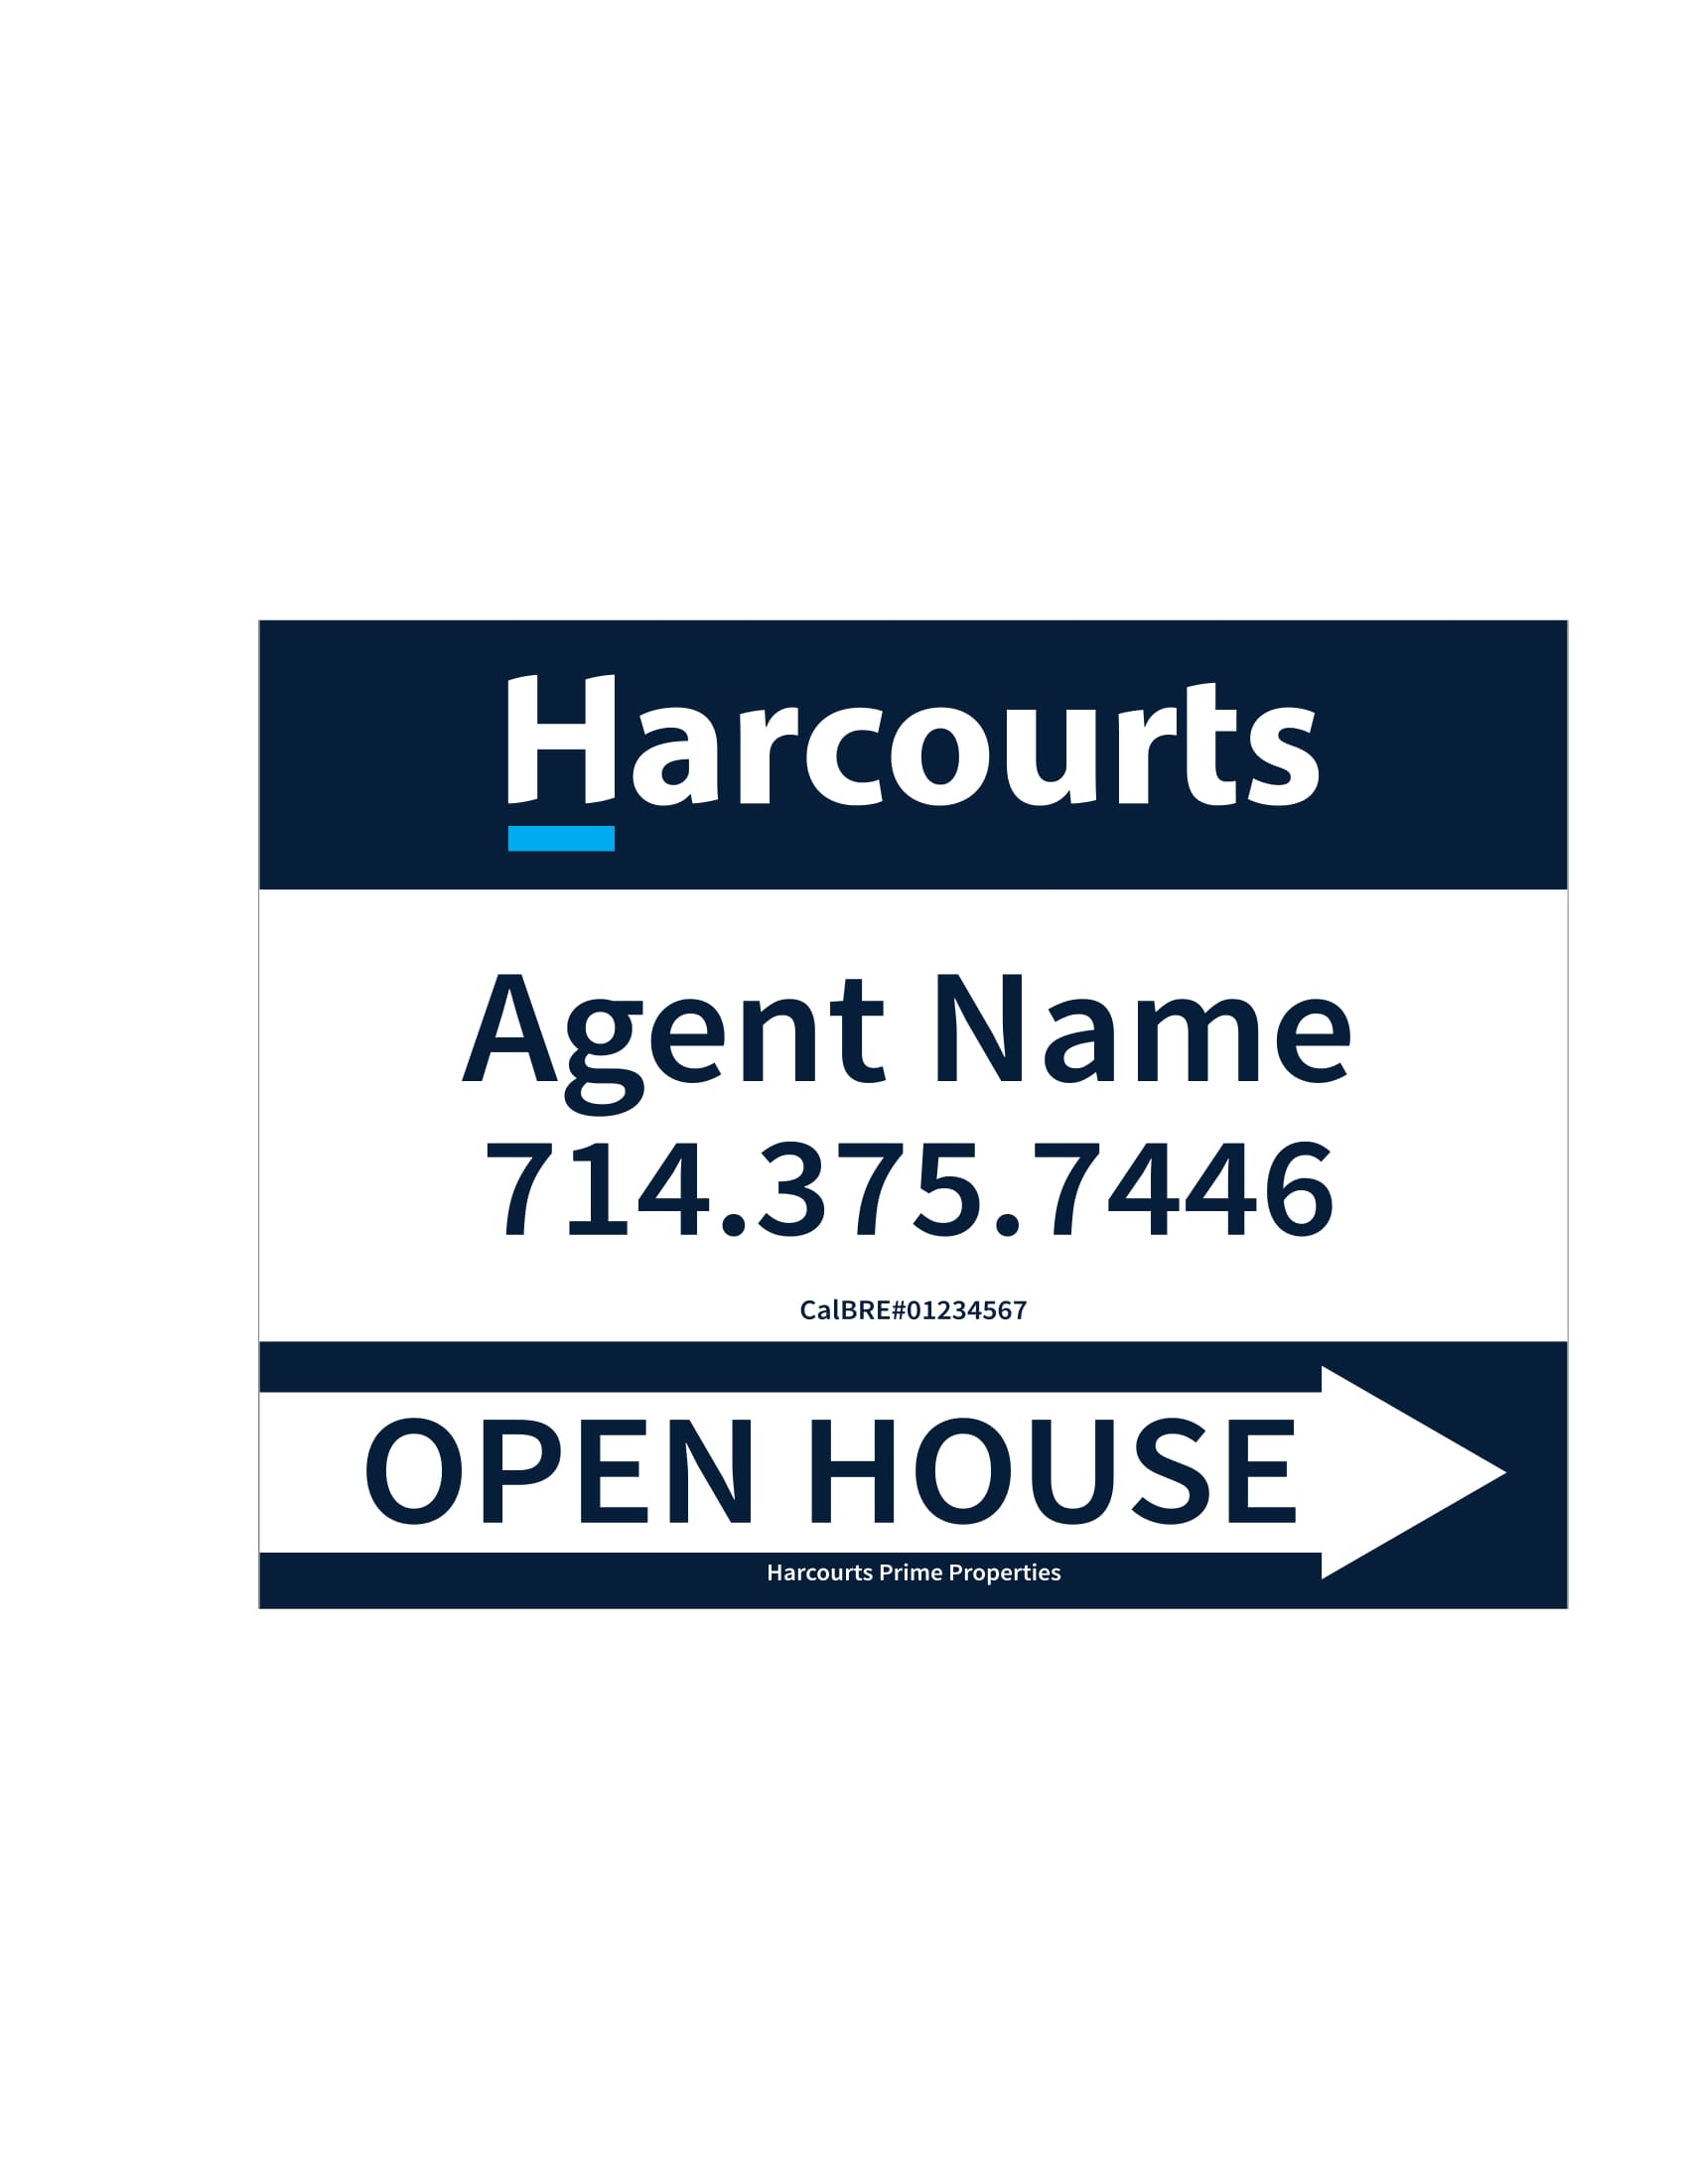 Harcourts Open House signs